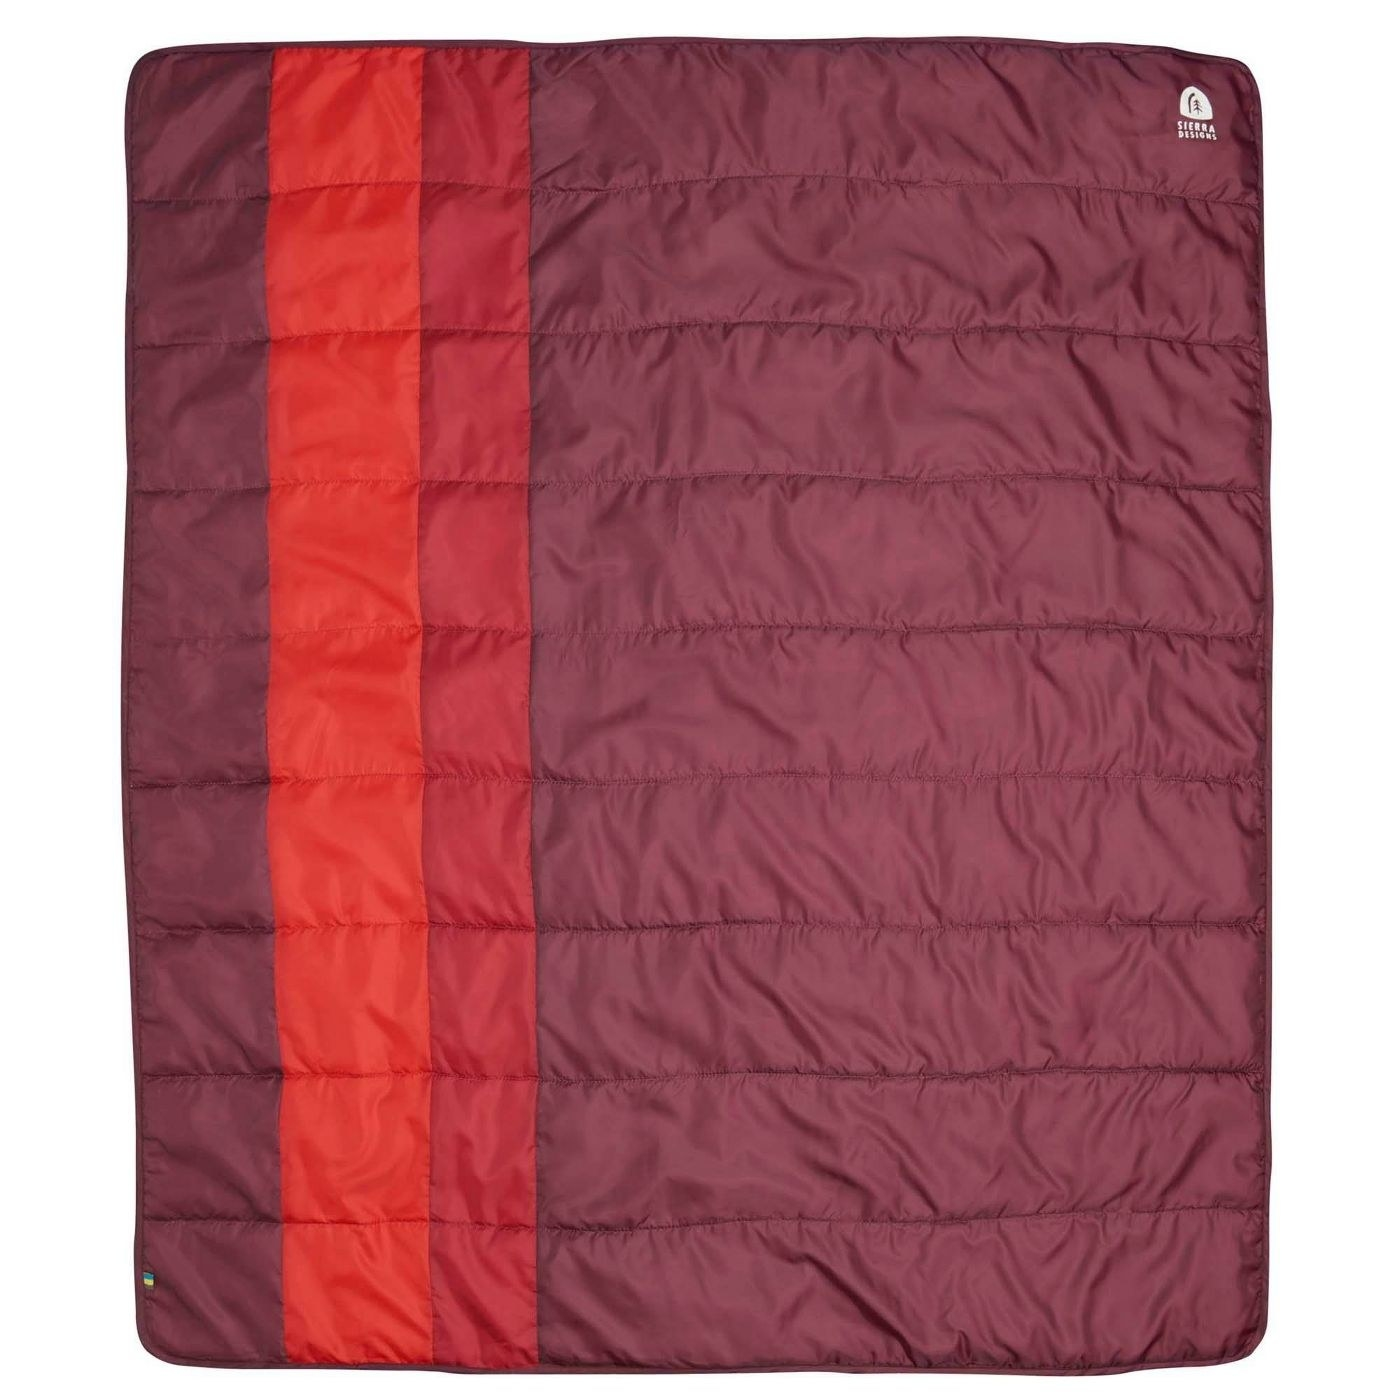 A maroon quilt with two different red stripes